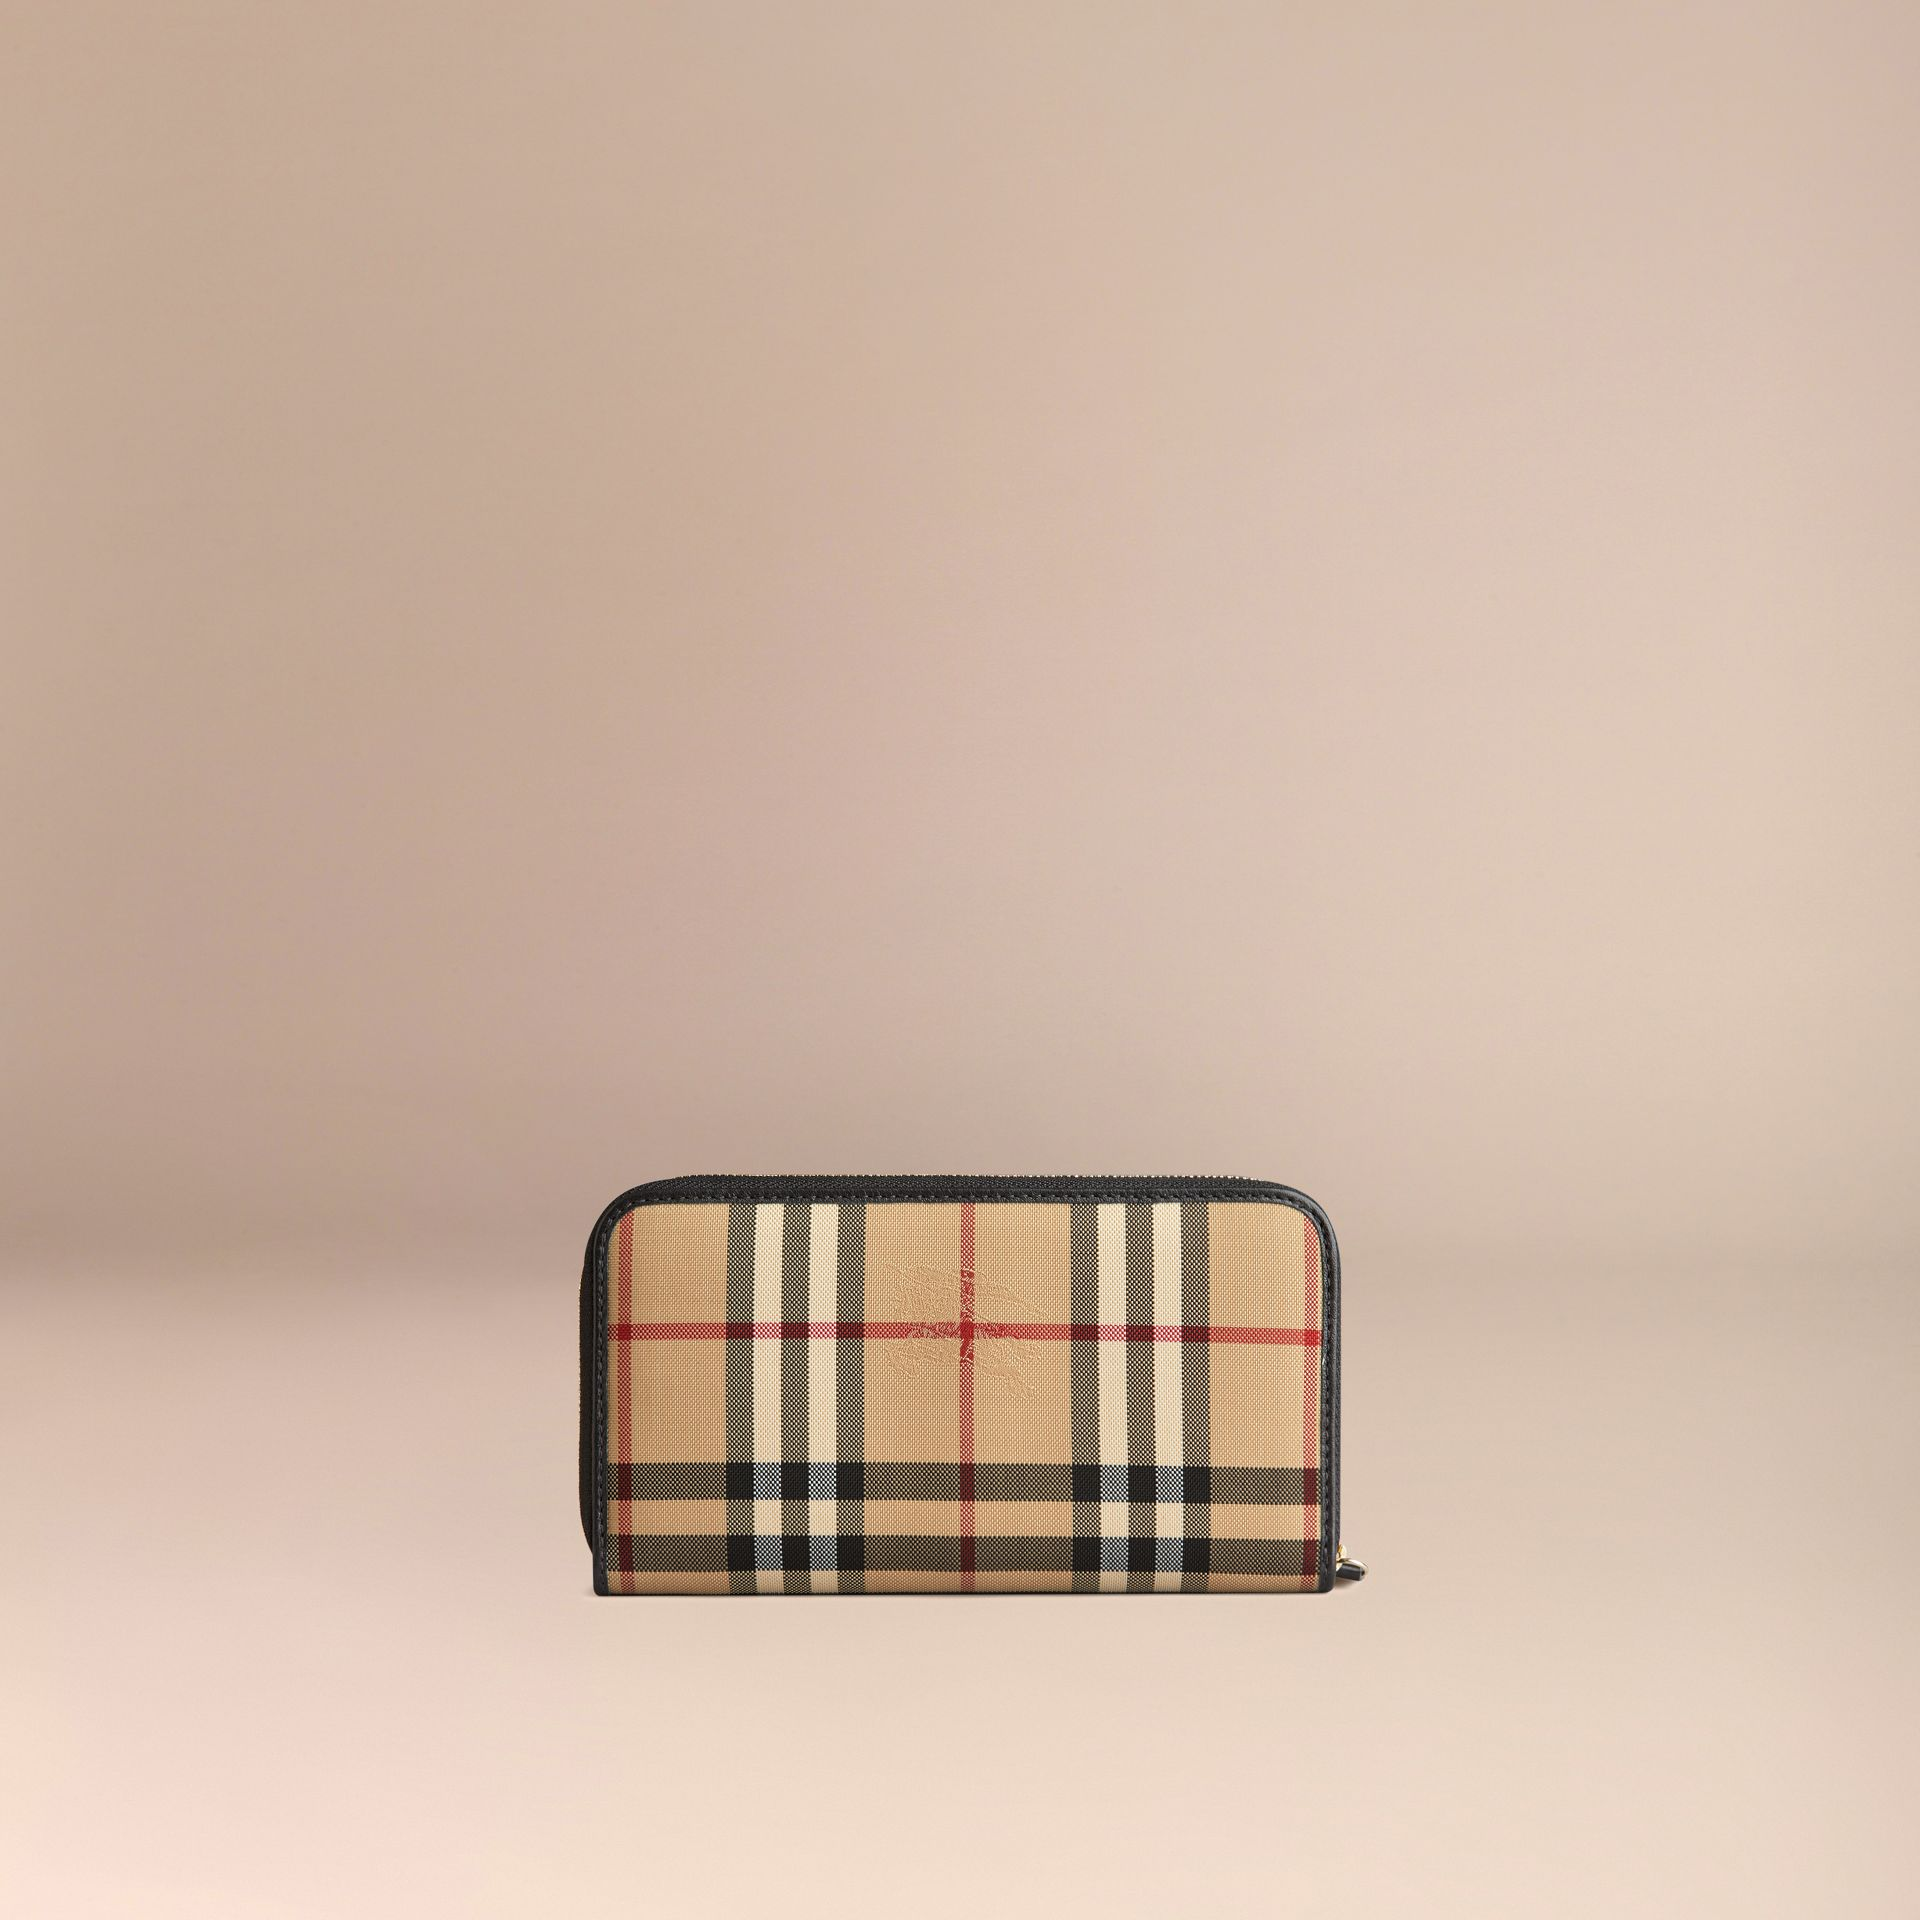 Horseferry Check and Leather Ziparound Wallet in Black - Women | Burberry - gallery image 3